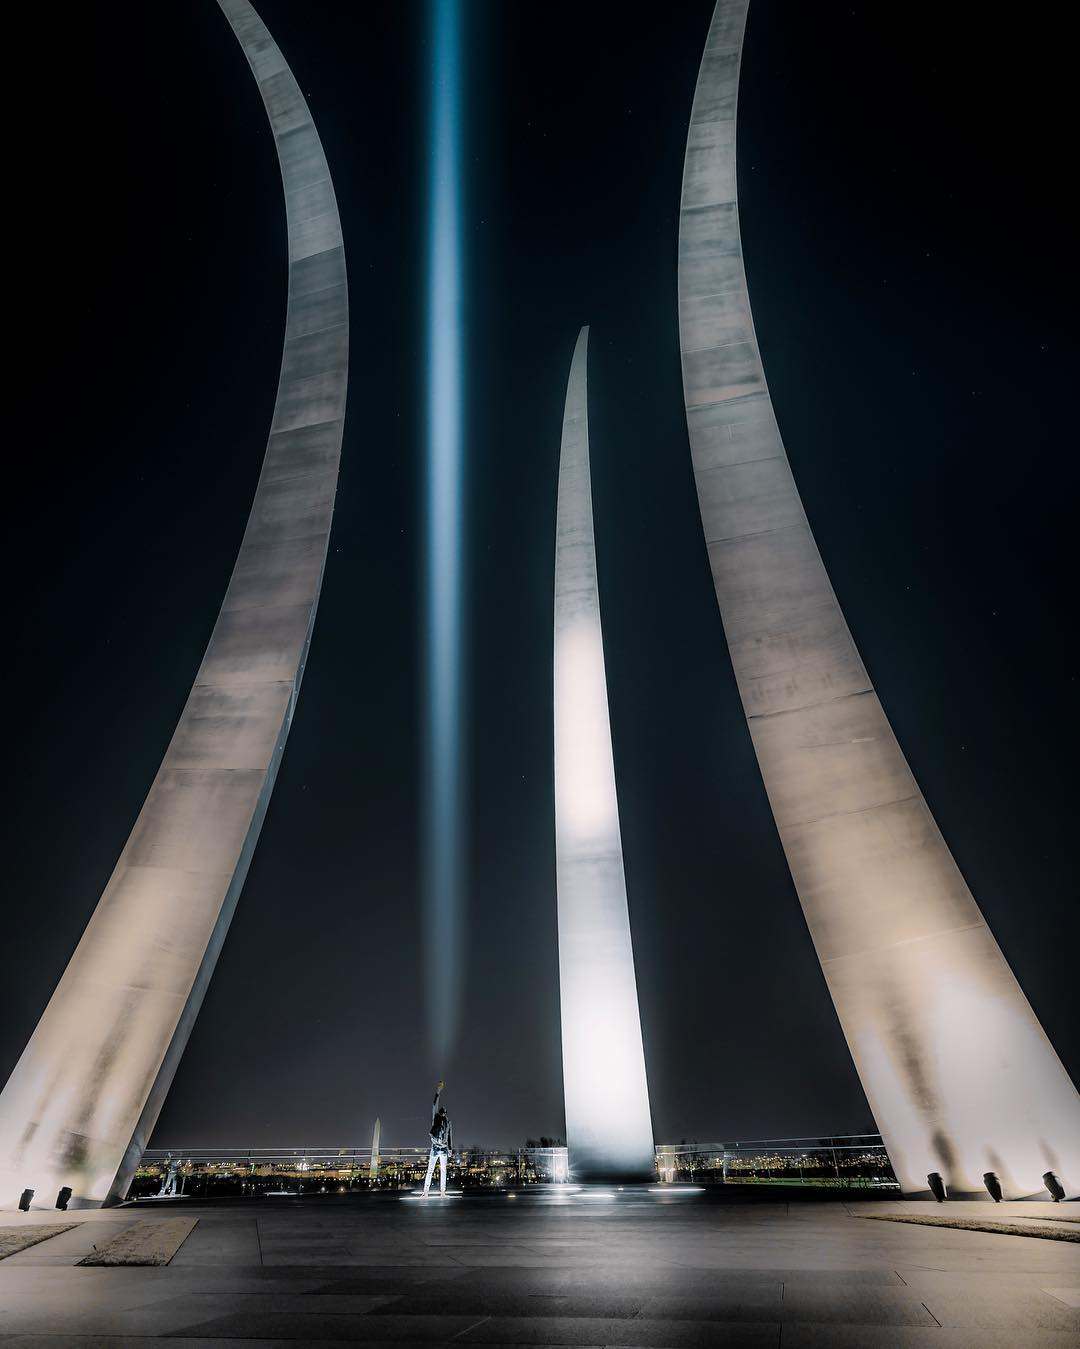 @floodthesensor - United States Air Force Memorial at night - Military memorial in Virginia near Washington, DC